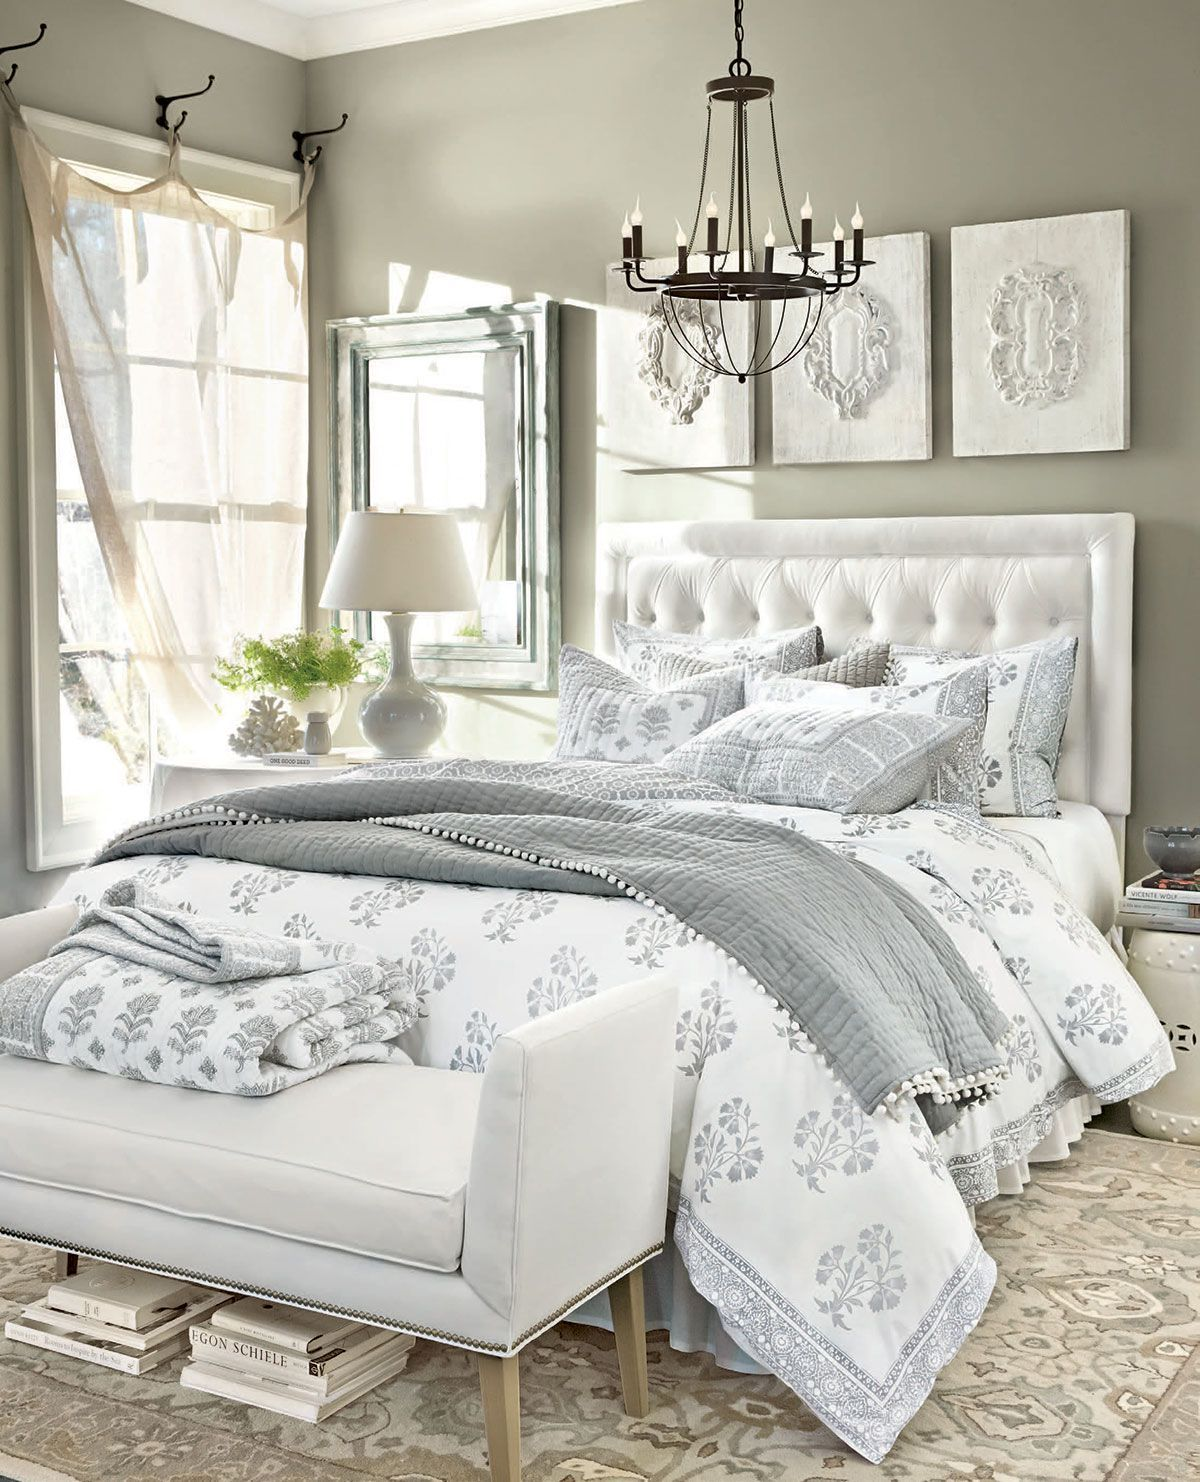 Bedrooms French Bedroom Decorfrench